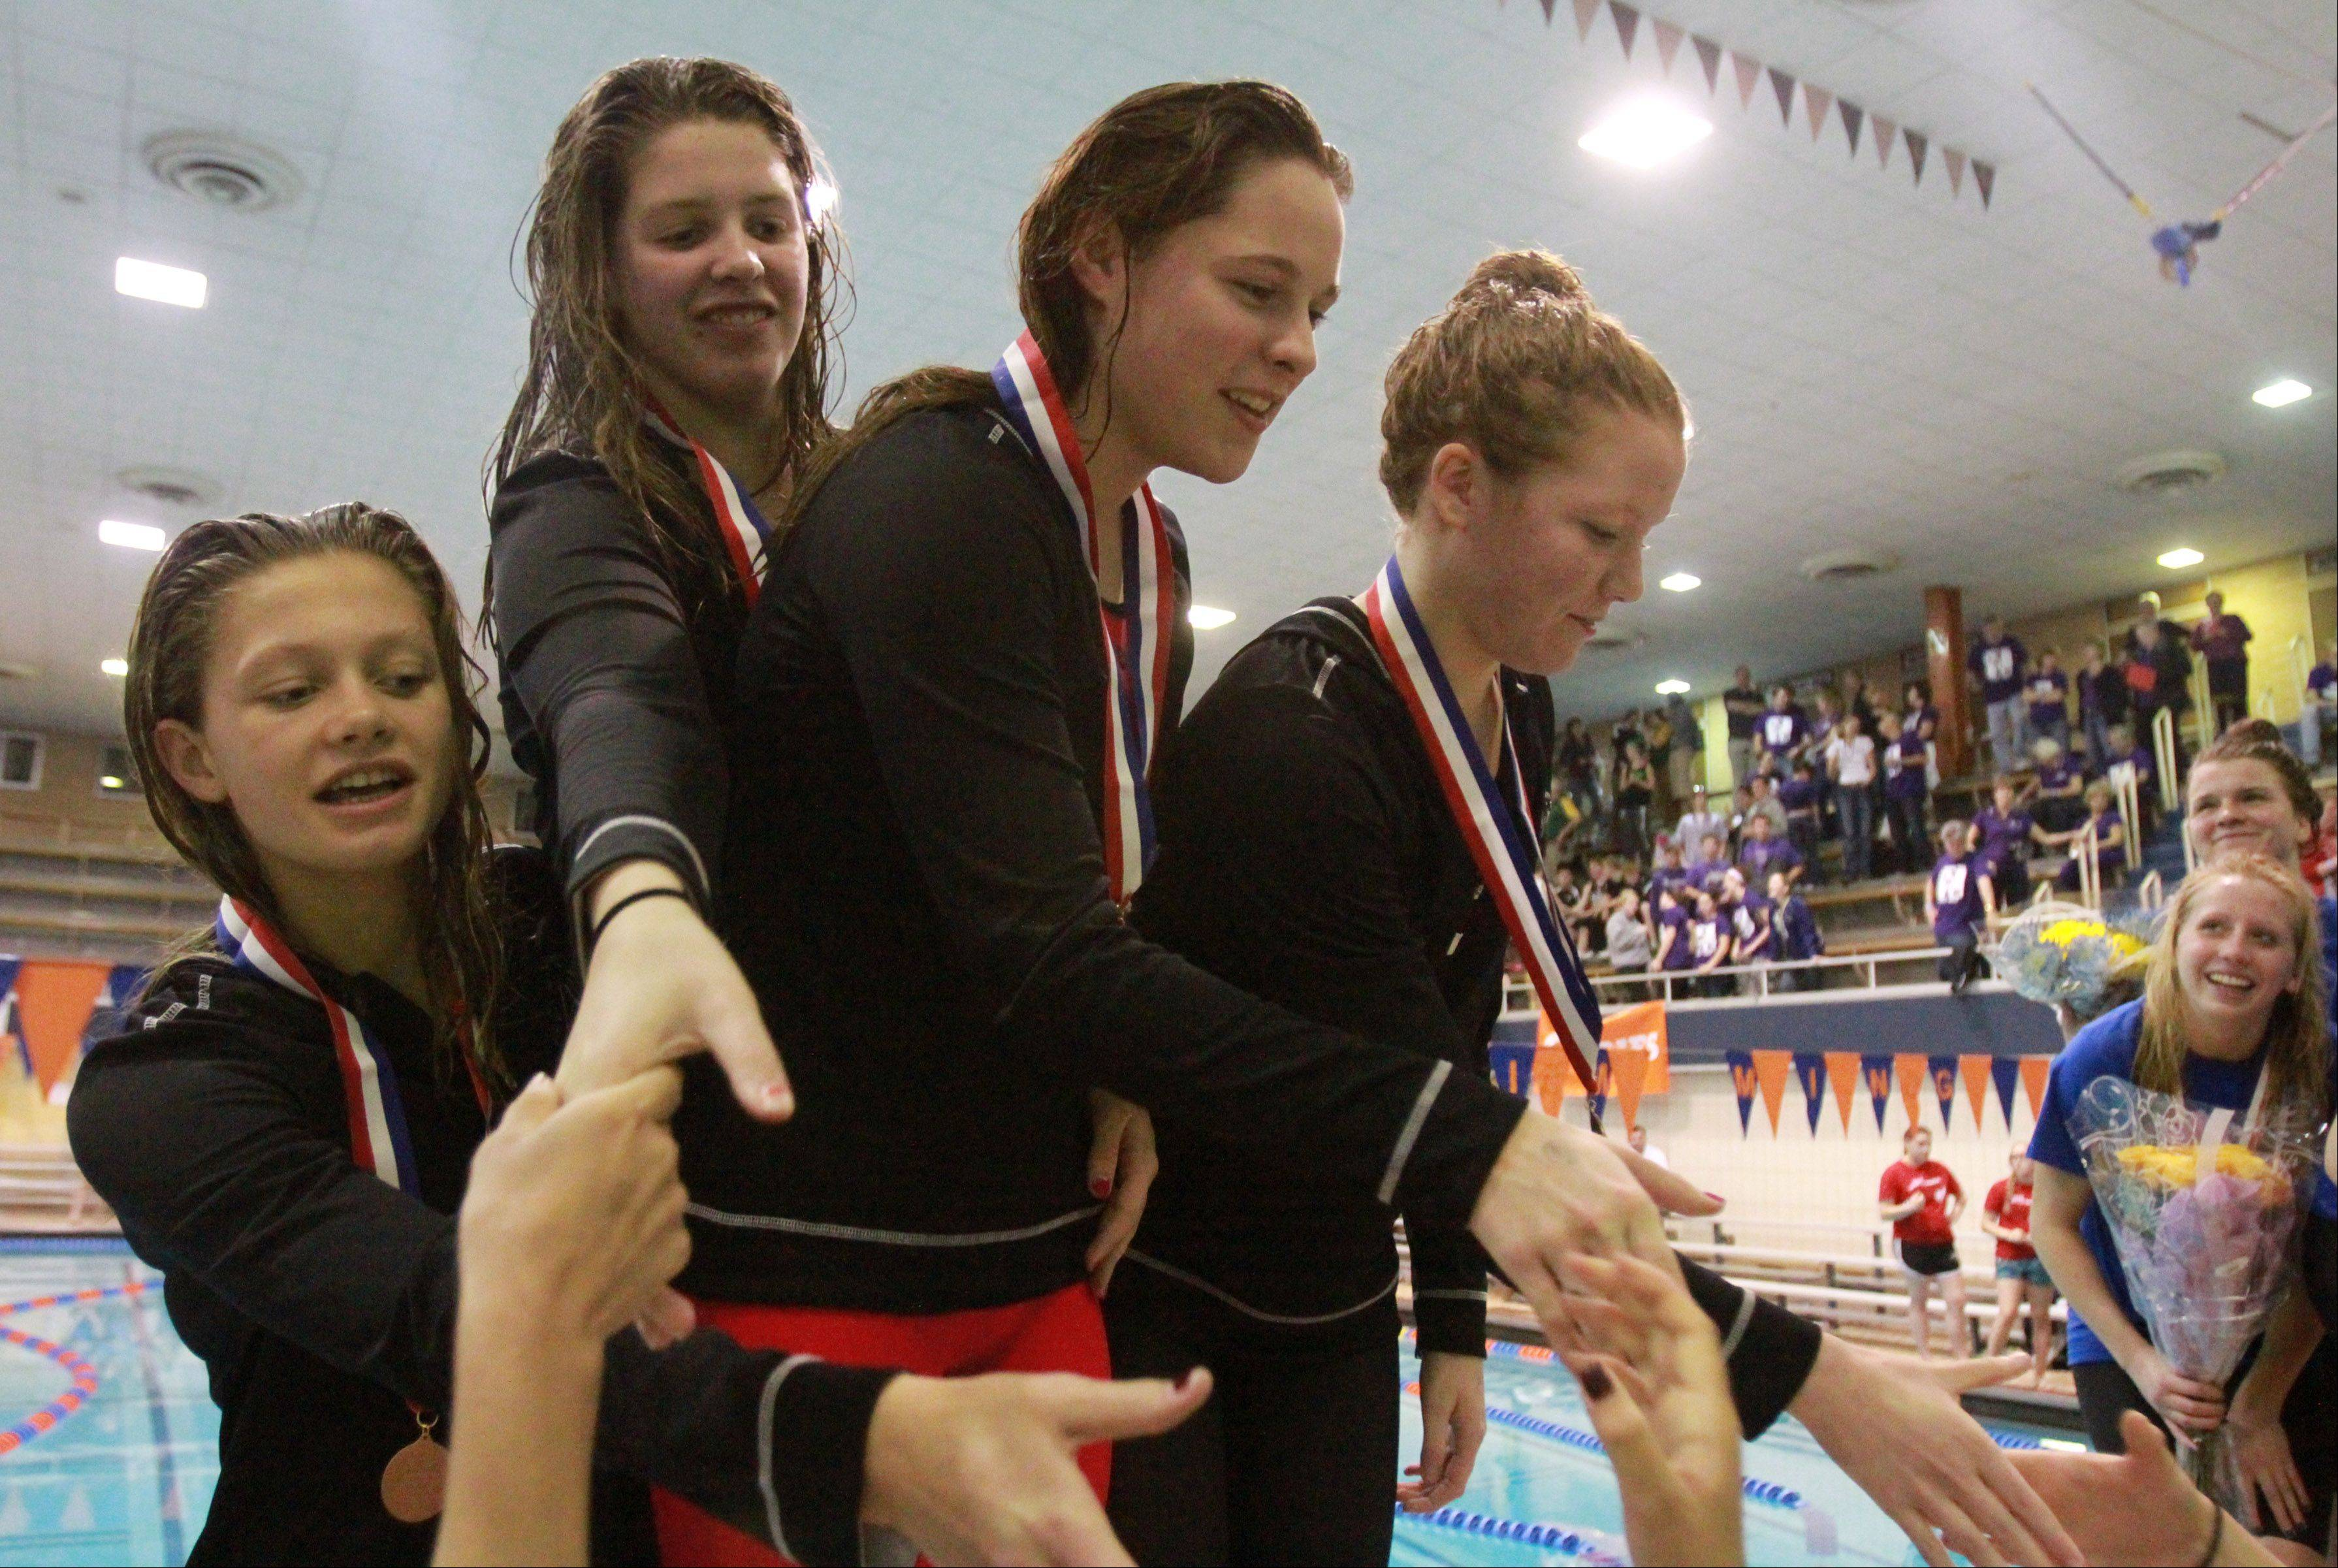 Mundelein's Erin Falconer, Jennifer Kordik, Rachel Robb, and Karrie Kozokar placed eight in the 400-yard freestyle relay at the IHSA state championships in Evanston on Saturday.